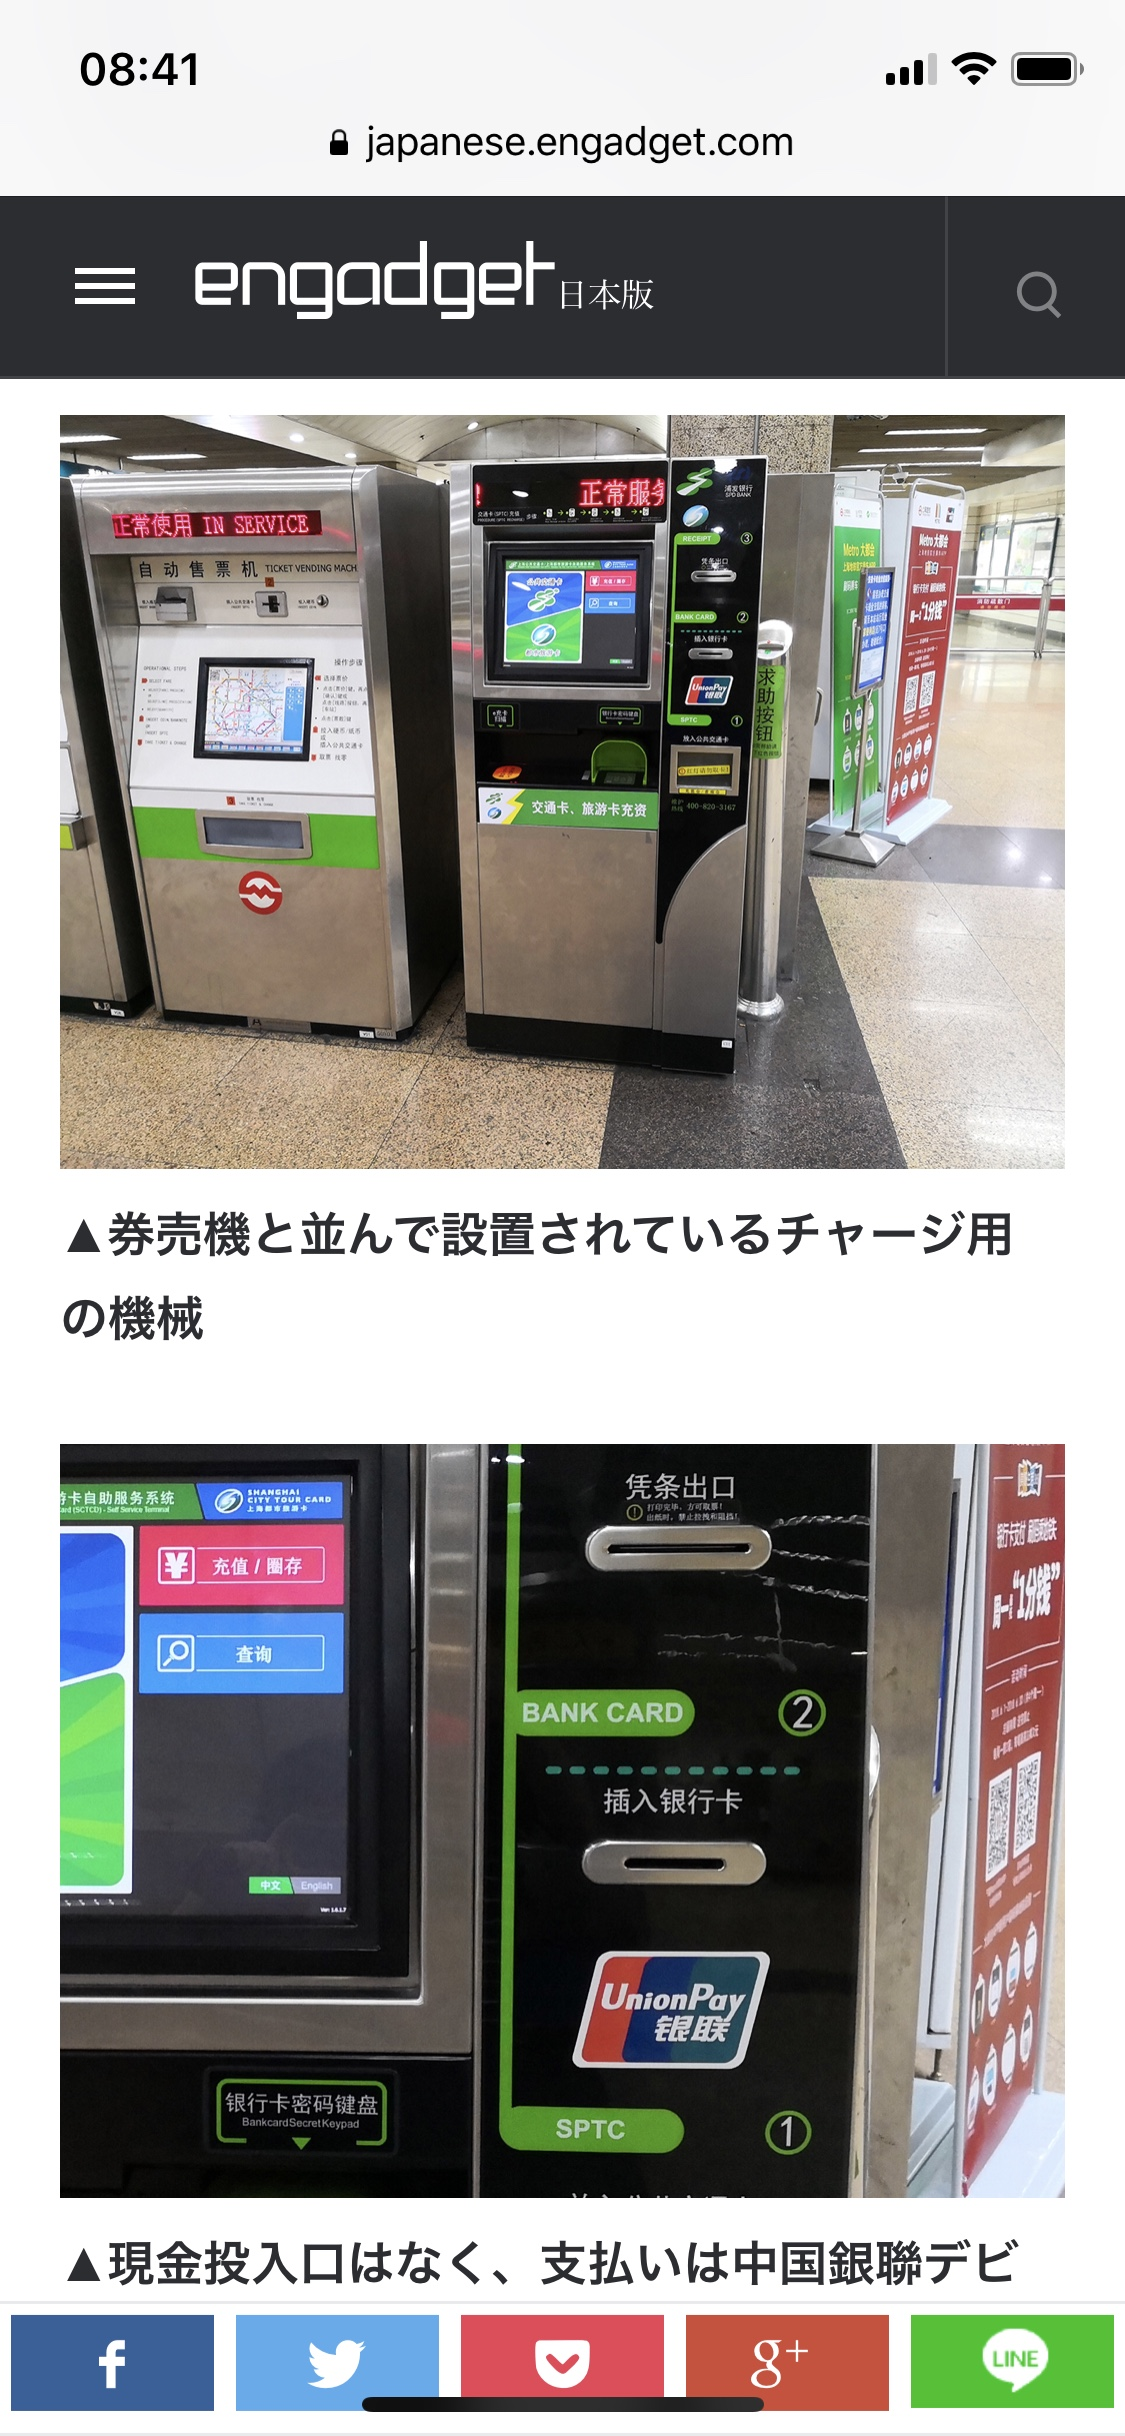 Recharge options for Express Transit China card are more limited than Suica